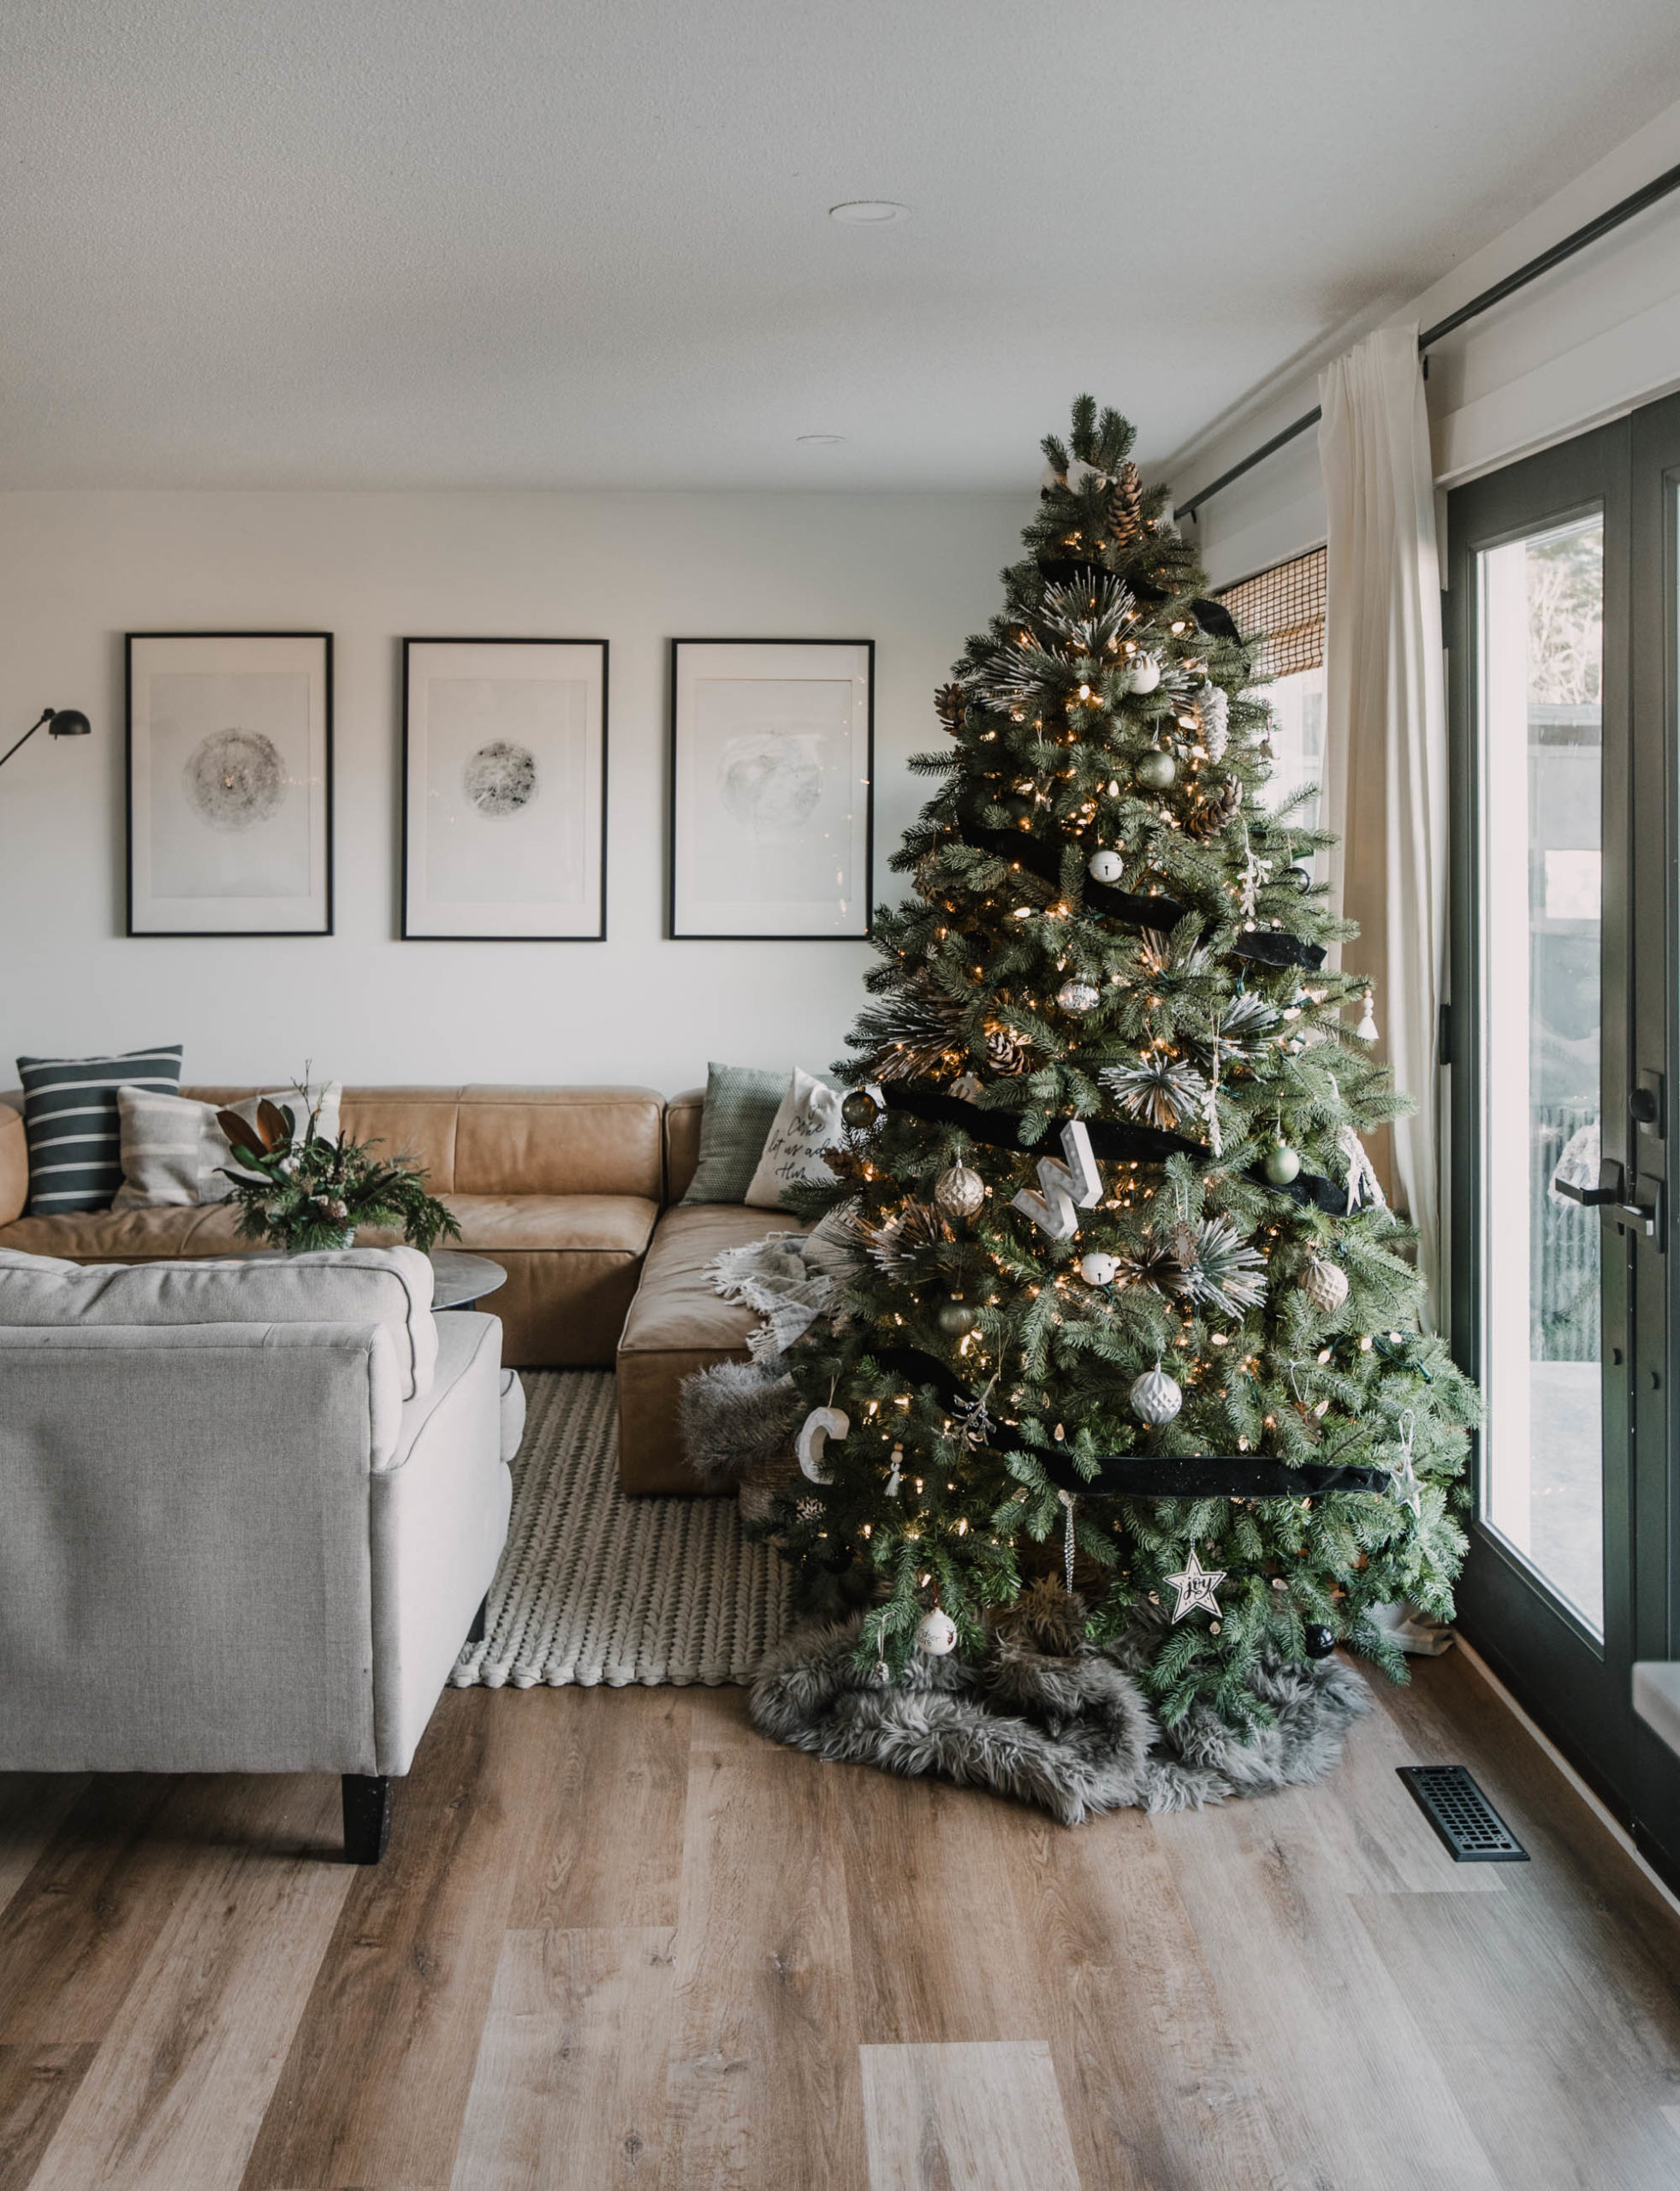 Cozy Modern Holiday Home Tour